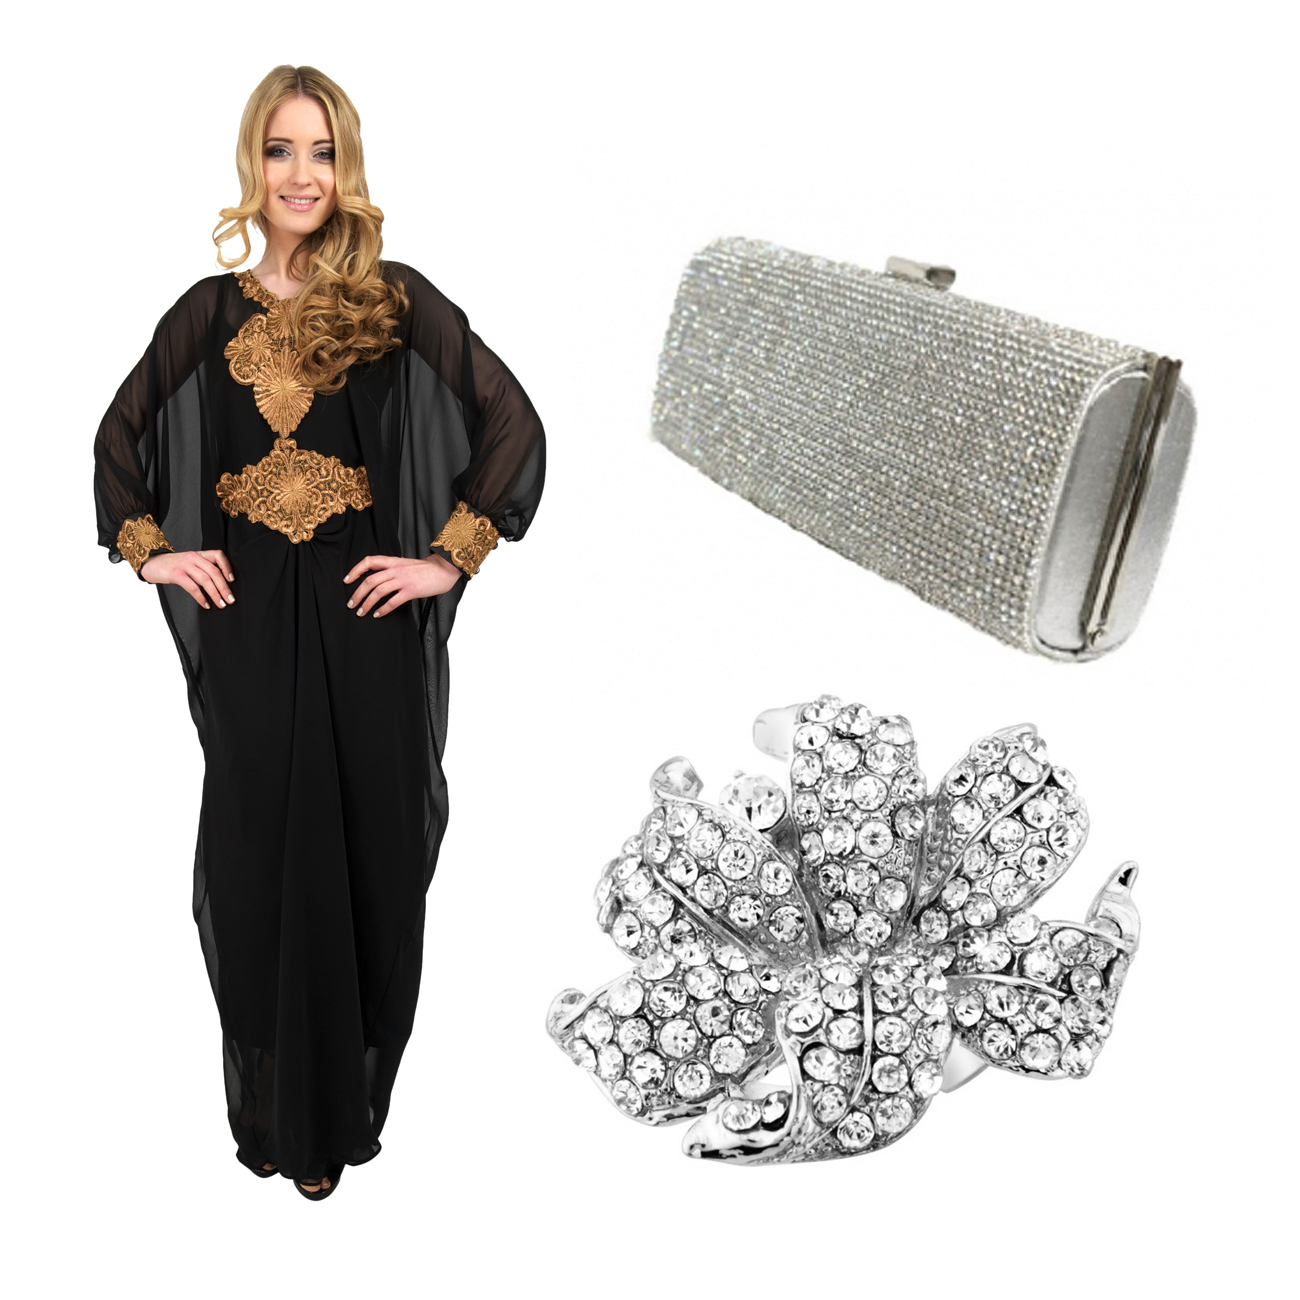 kaftan styles for a formal event